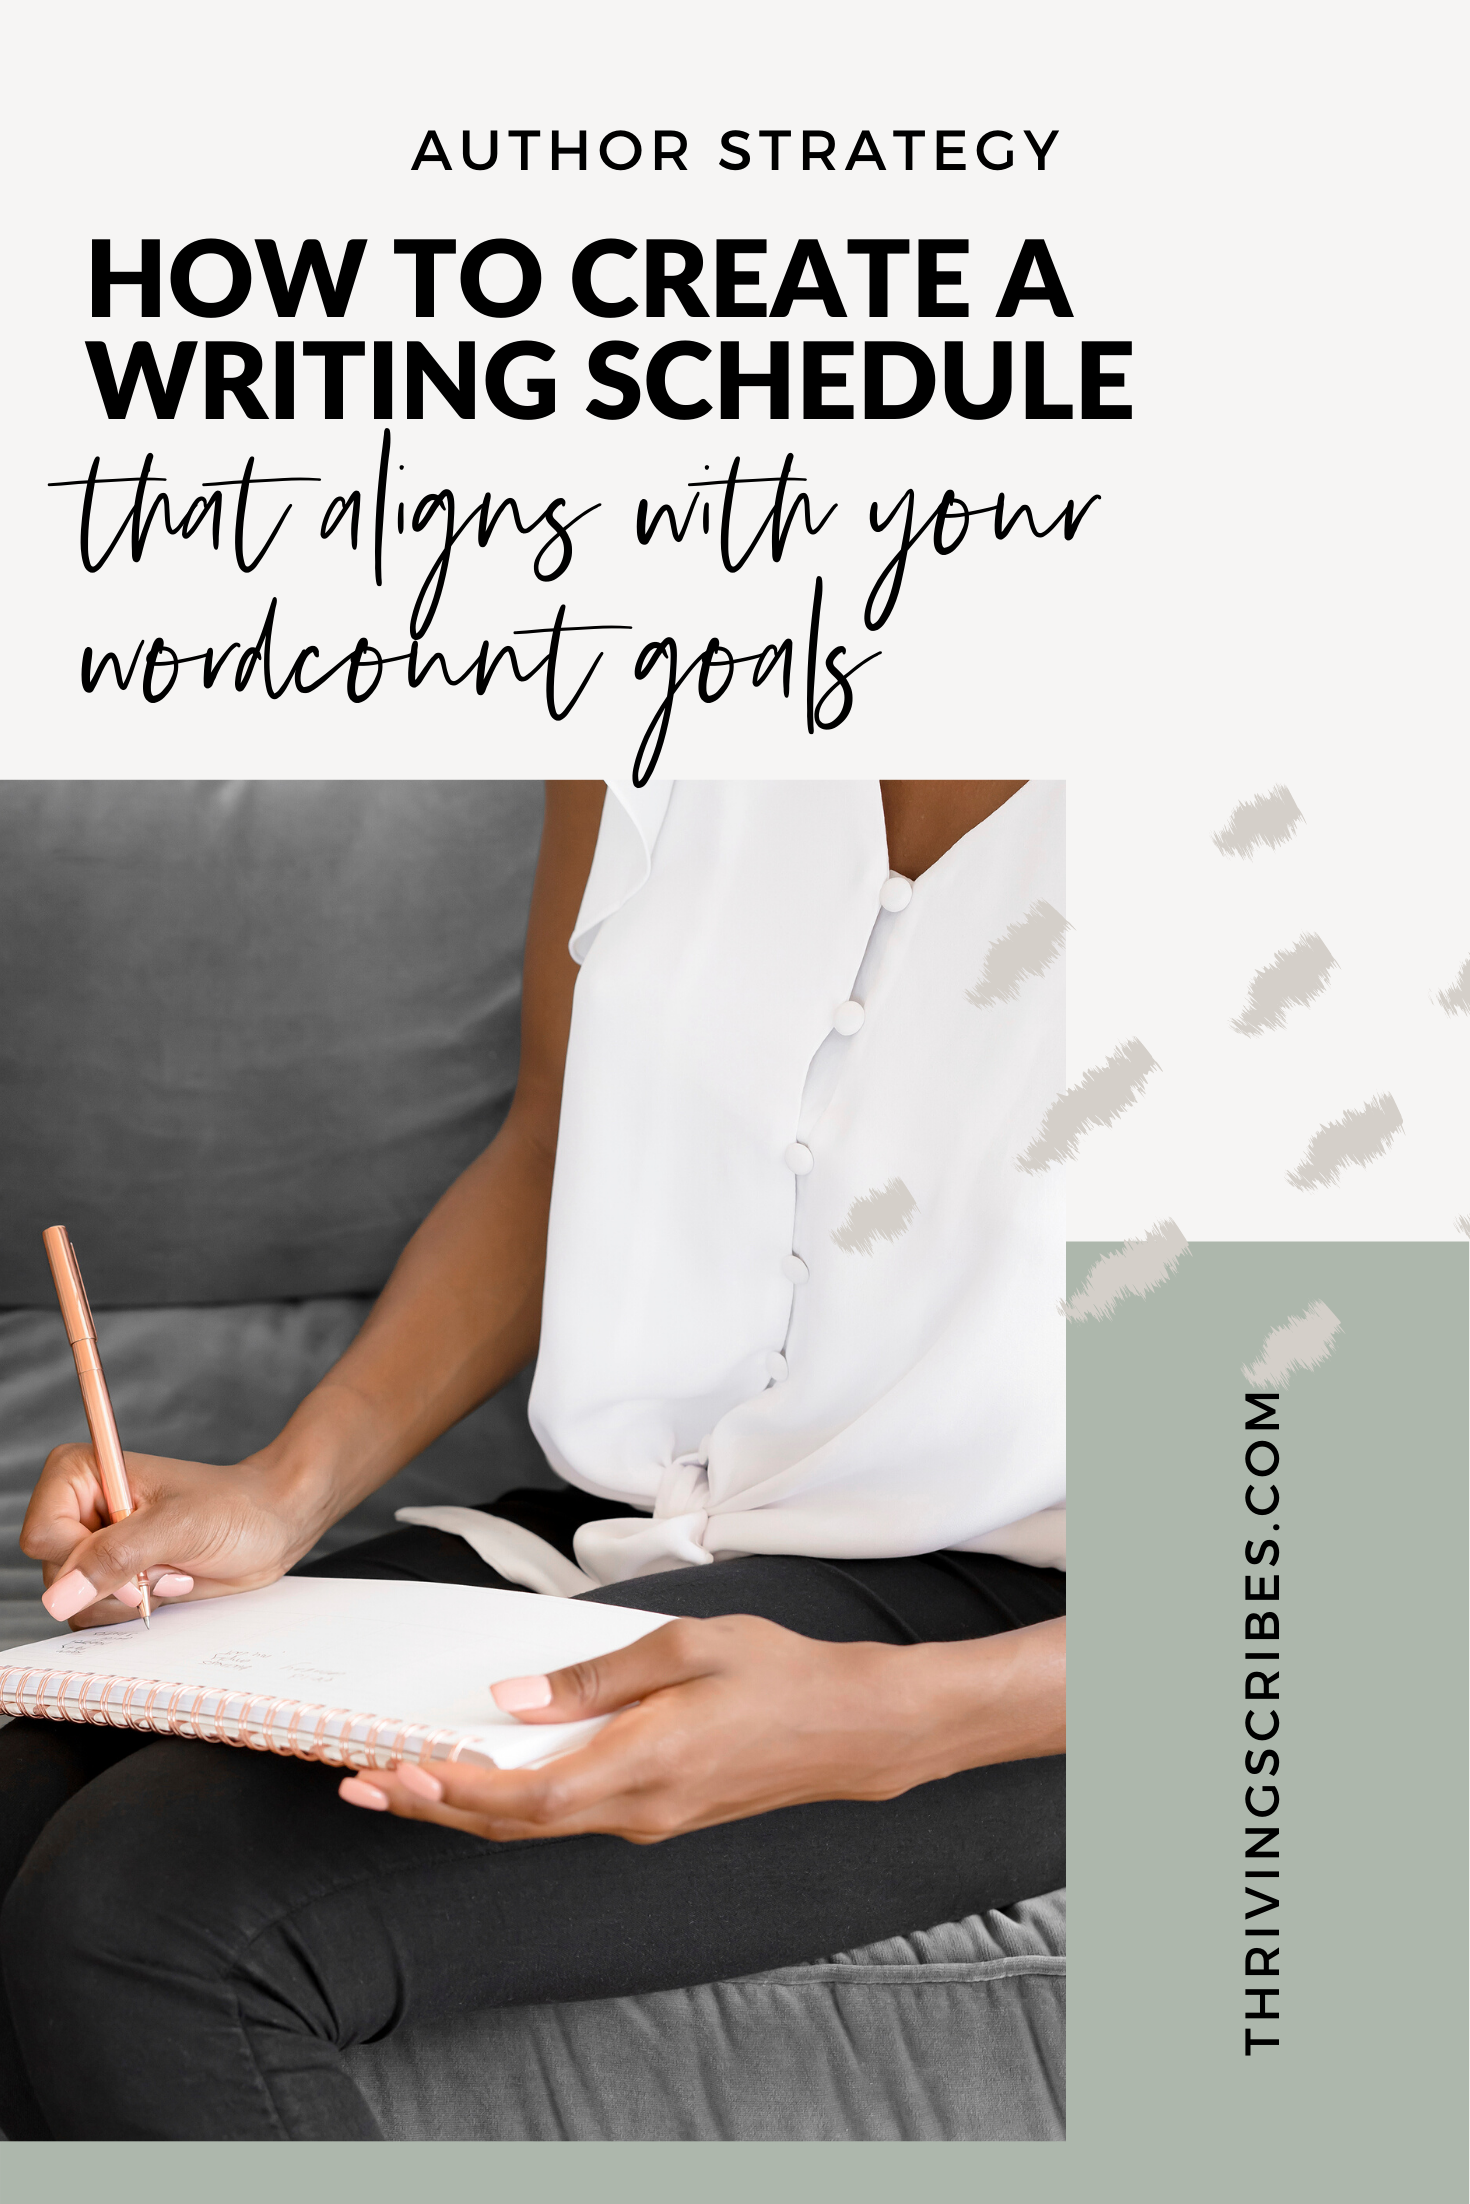 How To Create A Writing Schedule That Aligns With Your Goals